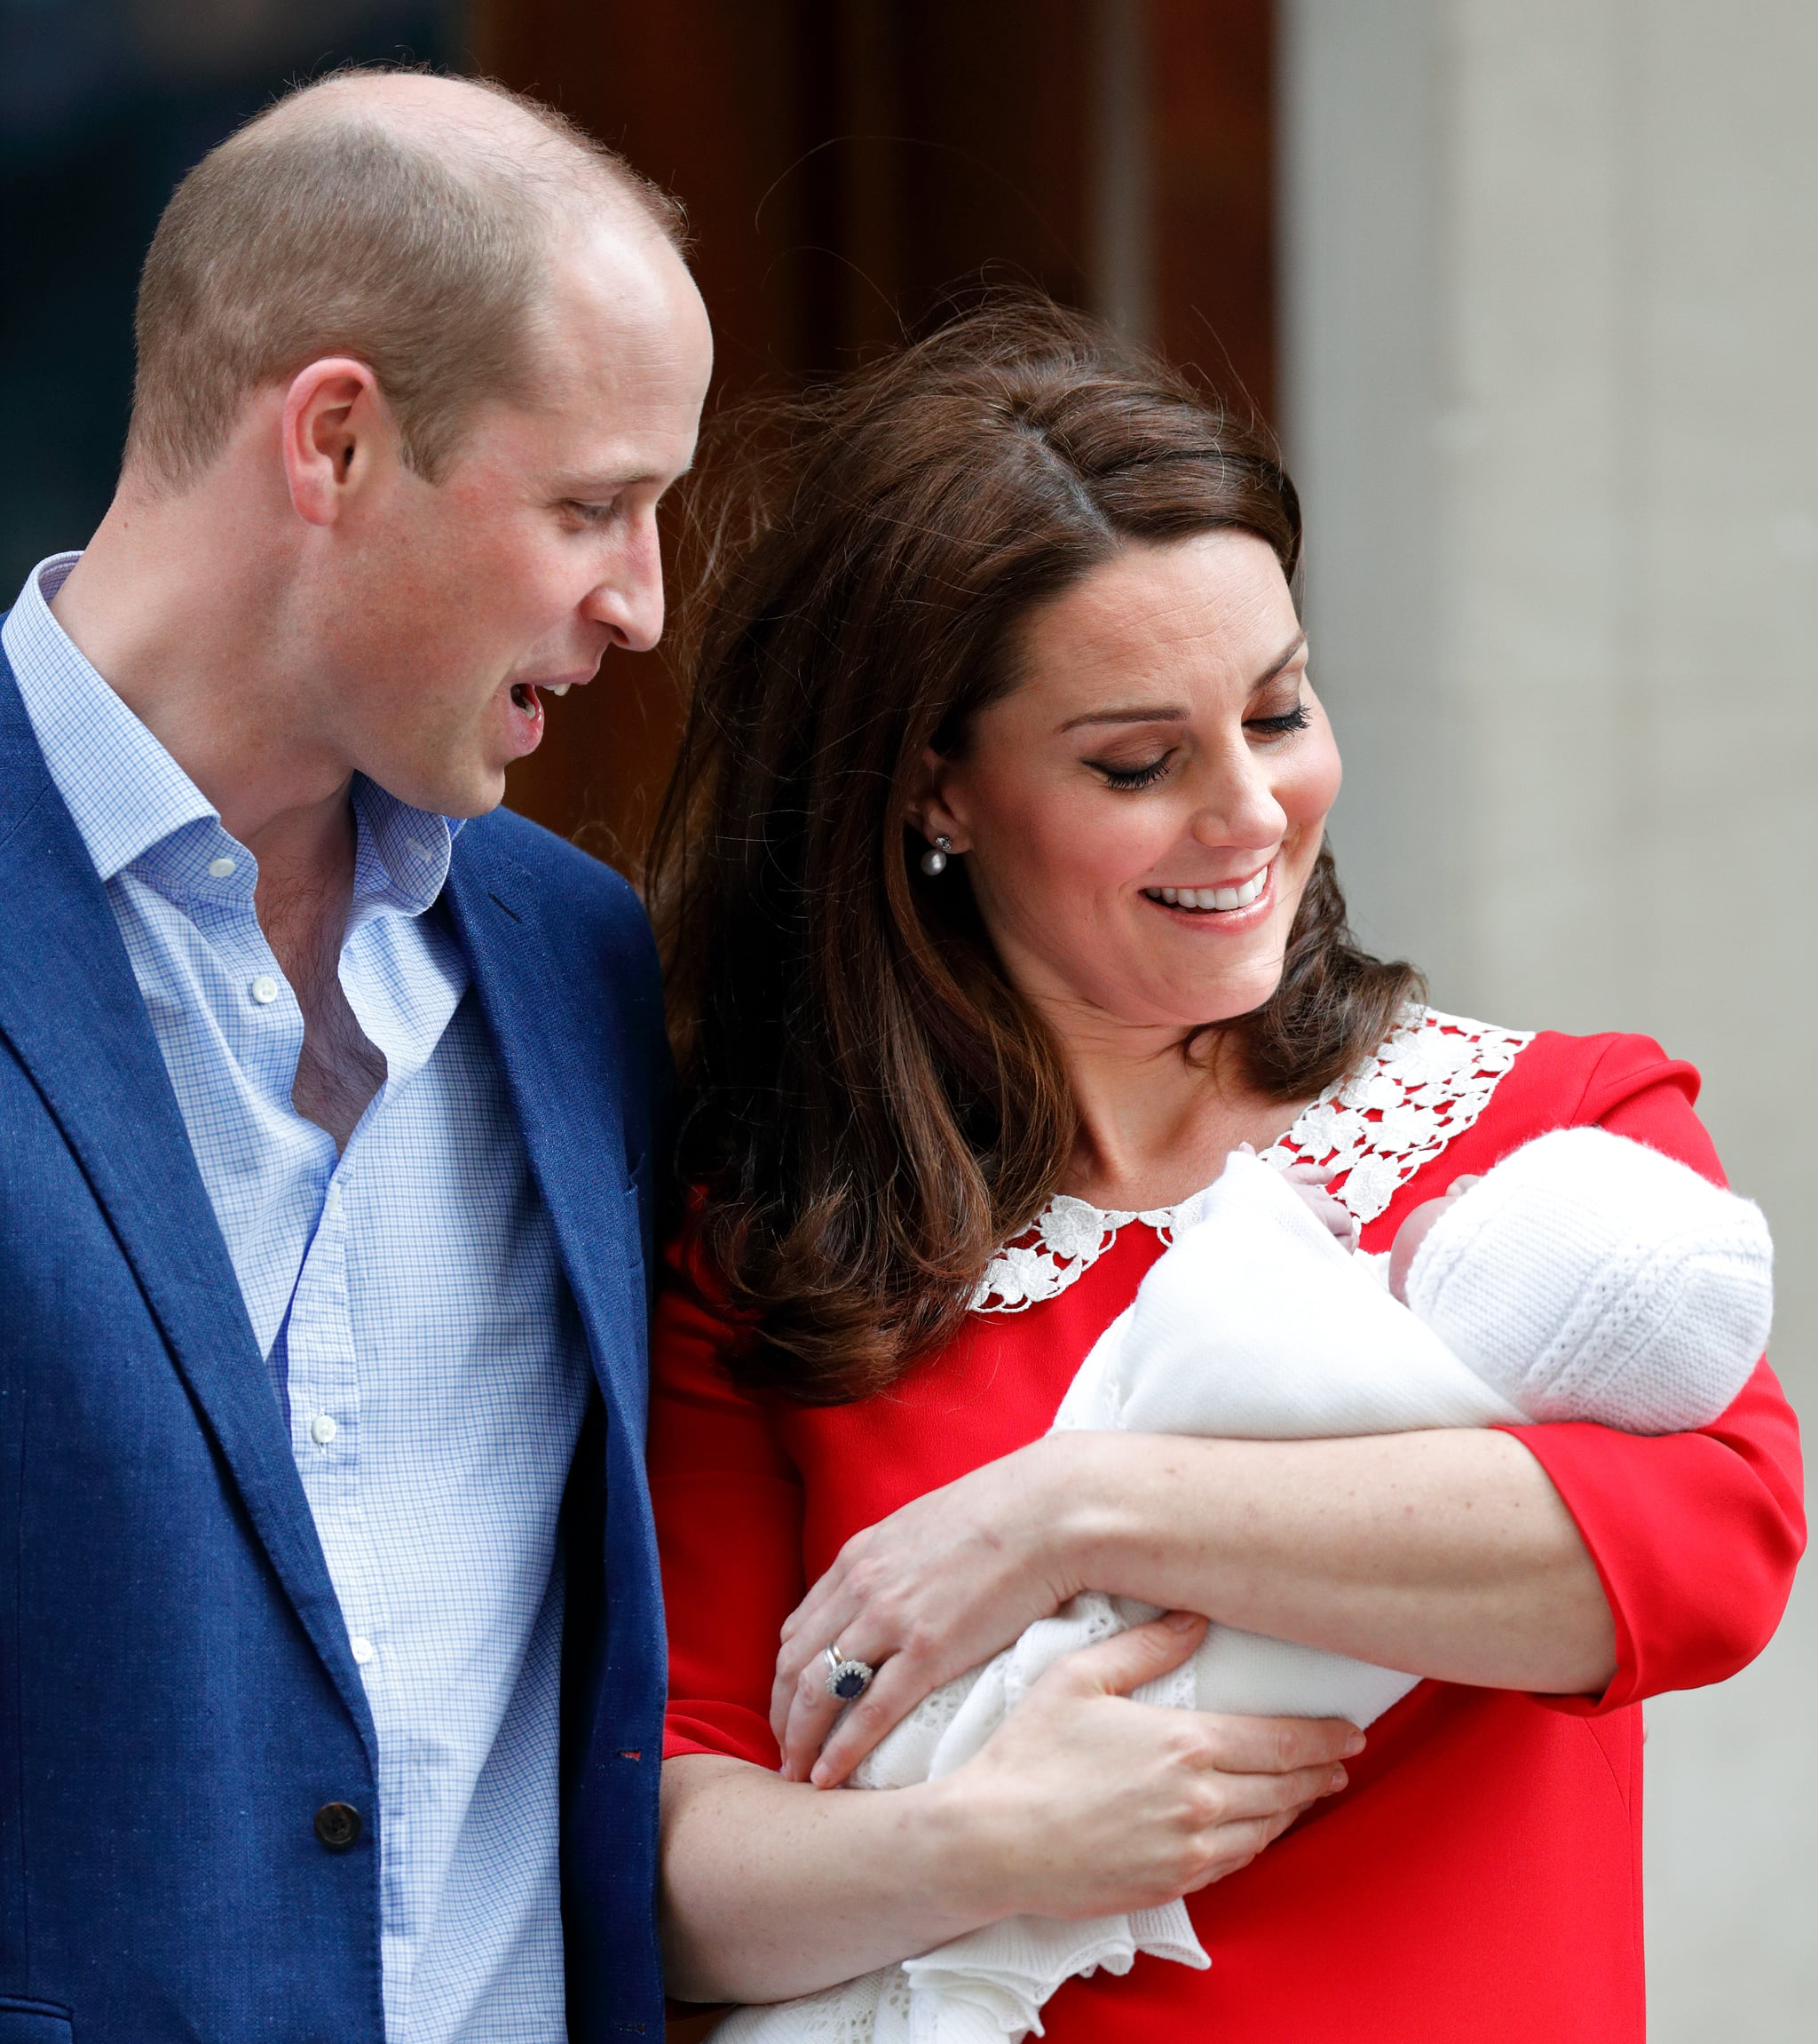 LONDON, UNITED KINGDOM - APRIL 23: (EMBARGOED FOR PUBLICATION IN UK NEWSPAPERS UNTIL 24 HOURS AFTER CREATE DATE AND TIME) Prince William, Duke of Cambridge and Catherine, Duchess of Cambridge depart the Lindo Wing of St Mary's Hospital with their newborn baby son on April 23, 2018 in London, England. The Duchess delivered a boy at 11:01 am, weighing 8lbs 7oz, who will be fifth in line to the throne. (Photo by Max Mumby/Indigo/Getty Images)